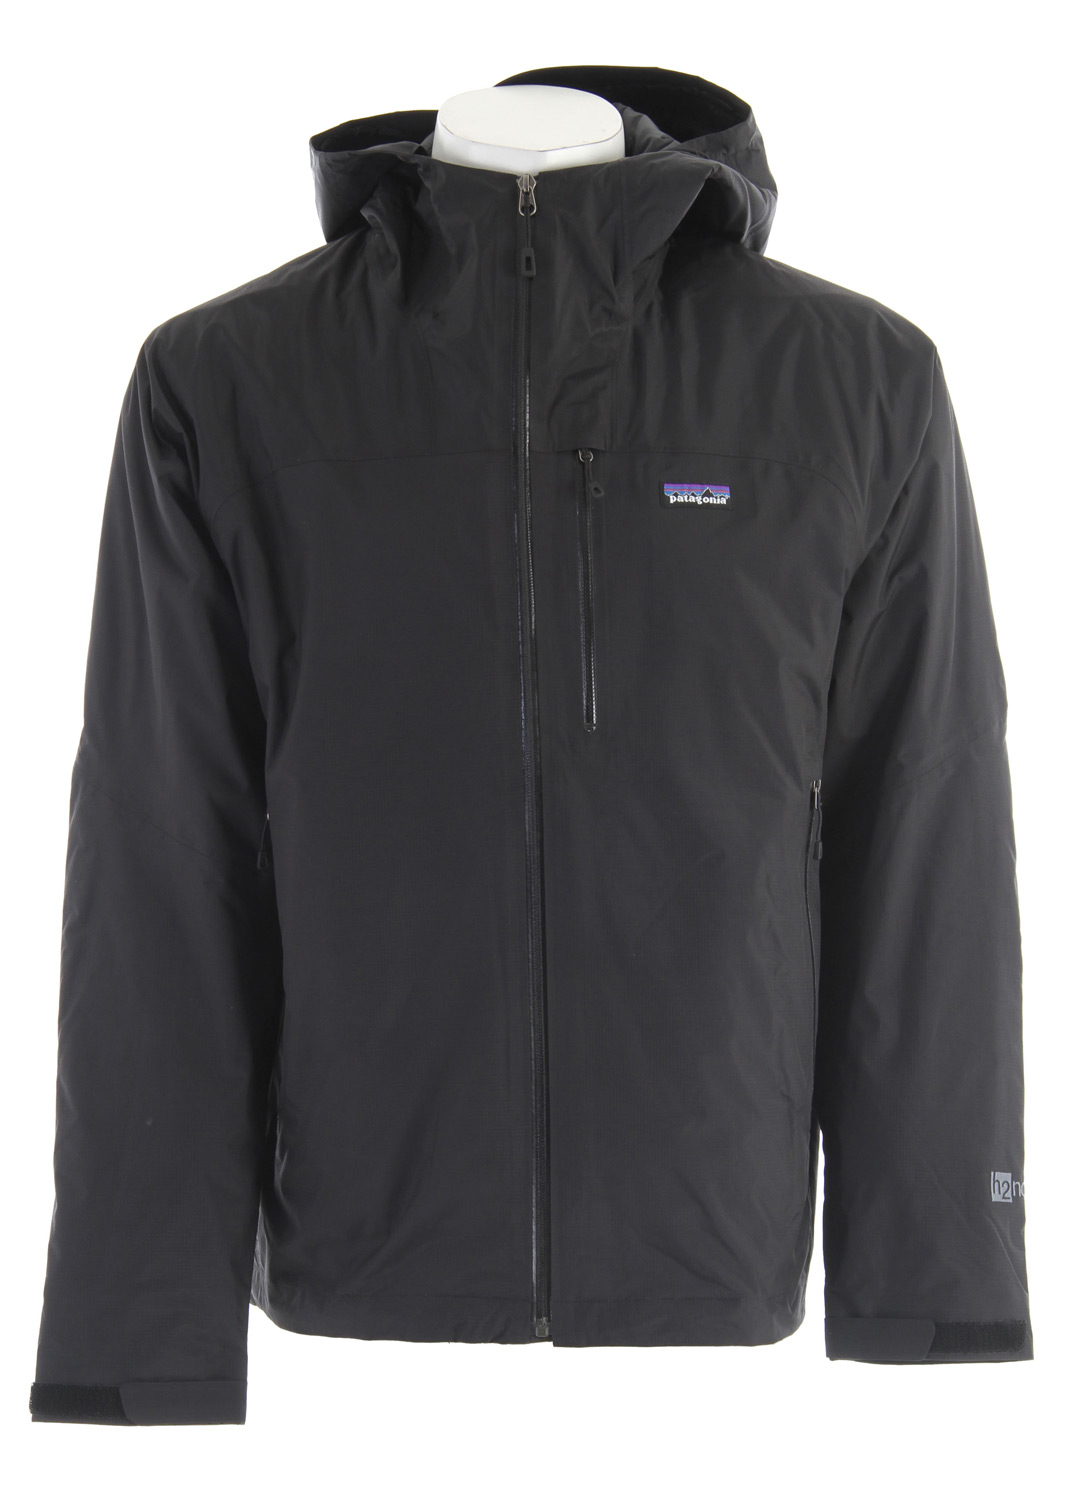 Waterproof, warm and superlight, this jacket has 2.5-layer nylon shell with a waterproof/breathable H2No barrier, and is insulated with Primaloft One polyester for cold and wet-weather protectionKey Features of the Patagonia Nano Storm Jacket: 2.5-layer nylon ripstop with a waterproof/breathable H2No barrier and Deluge DWR (durable water repellent) finish Lightweight 60-g Primaloft One polyester insulation provides excellent warmth and compressibility Unique quilt pattern holds insulation in place for durability Helmet-compatible, fully-adjustable hood with laminated visor for visibility in bad conditions Watertight, coated center-front-zipper Self-fabric hook-and-loop cuff closures and dual-adjust drawcord hem seal out the elements Pockets: Two handwarmers; one exterior left chest; one internal zippered pocket, one internal drop-in Regular fit (24.1 oz) 683 g Fabric: Shell: 2.5-layer 2.6-oz 50-denier 100% nylon ripstop with a waterproof/breathable H2No barrier. Insulation: 60-g Primaloft One polyester. Lining: 1.4-oz 22-denier 100% recycled polyester. Shell and lining have a Deluge DWR finish - $208.95